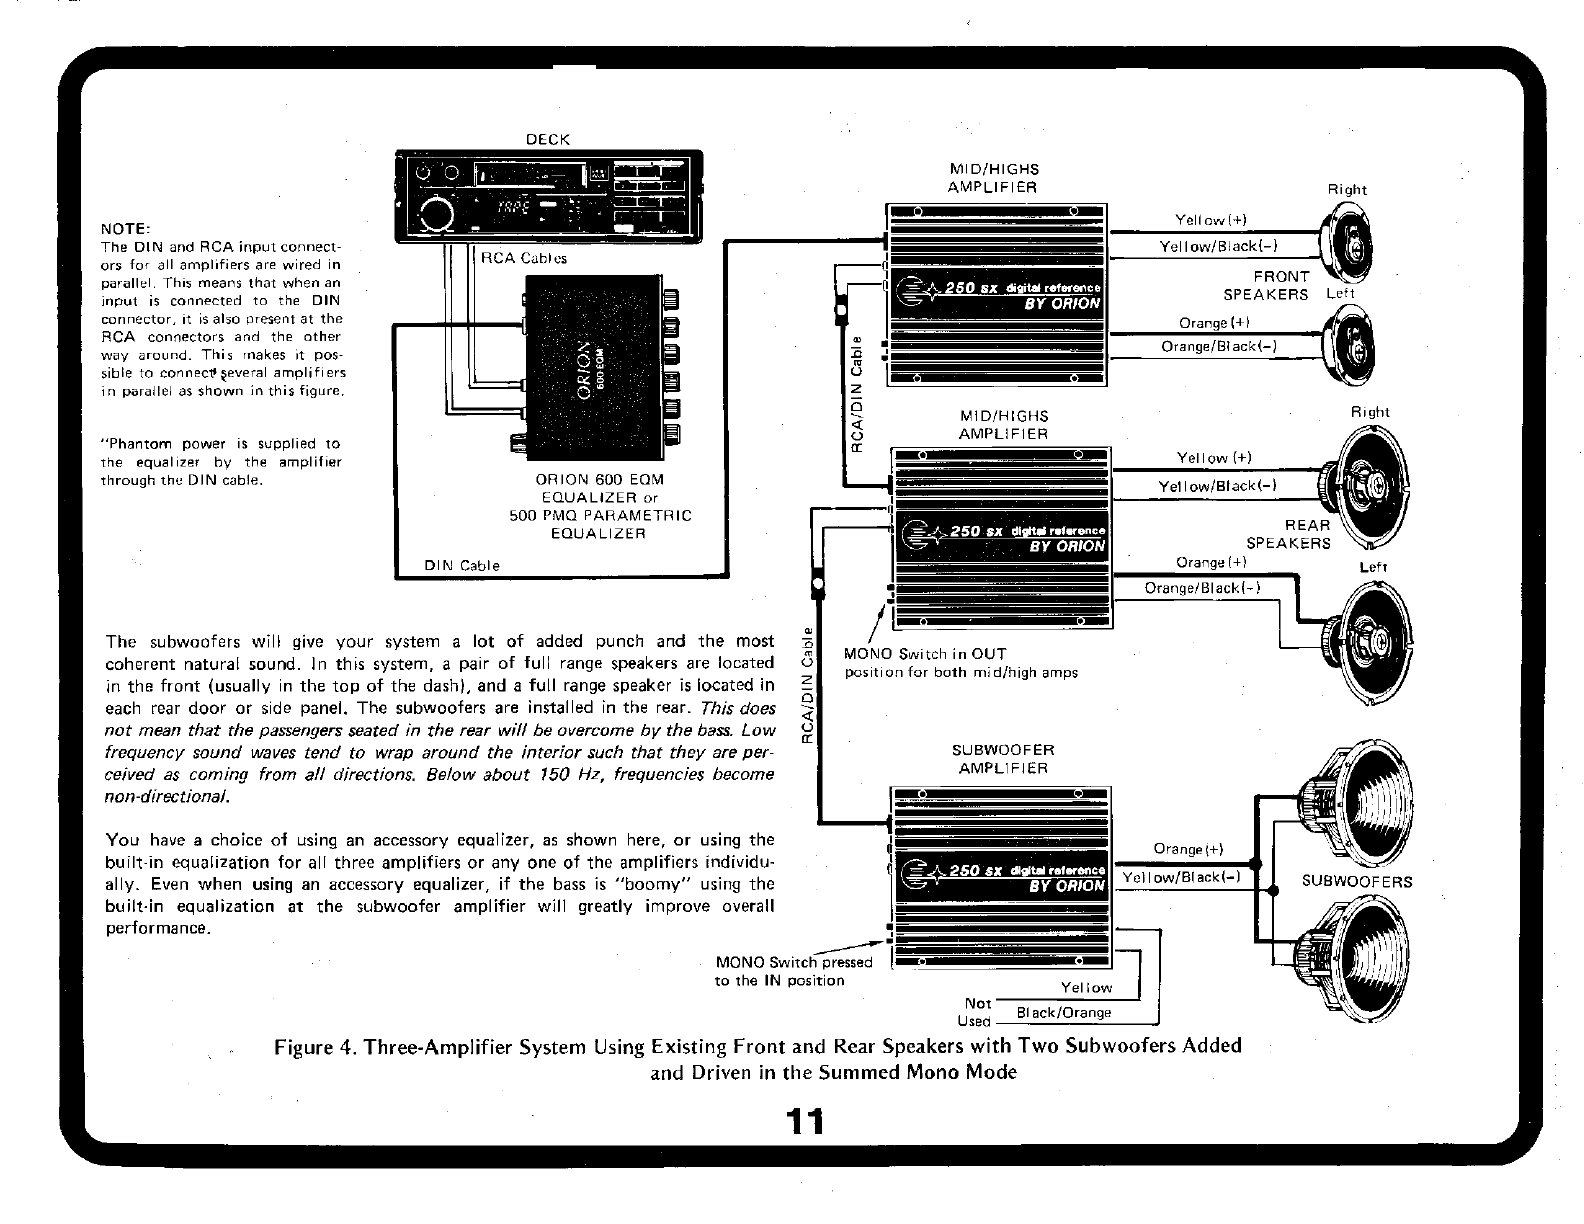 Page 11 of Orion Car Audio Car Amplifier 250SX User Guide